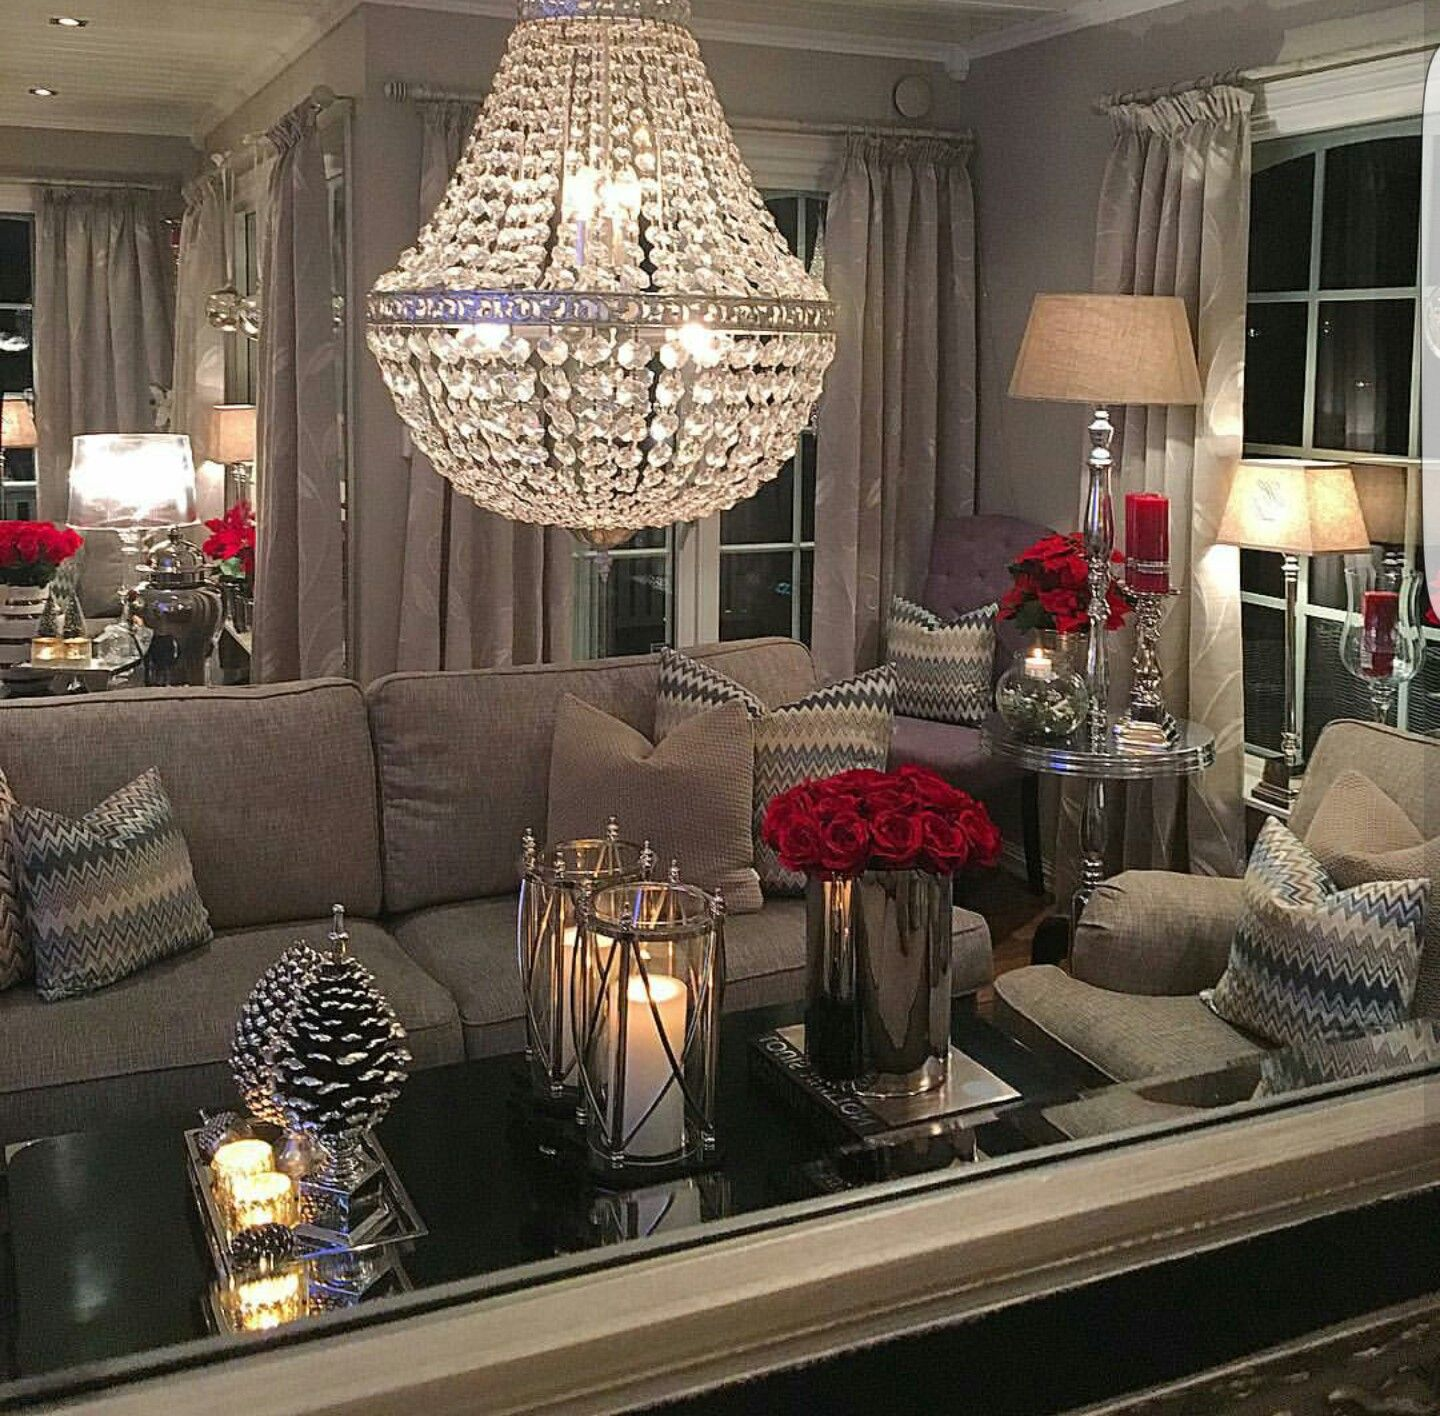 Living Room Ideas Designs And Inspiration: What Lovely Room....I Love The Red Accents With The